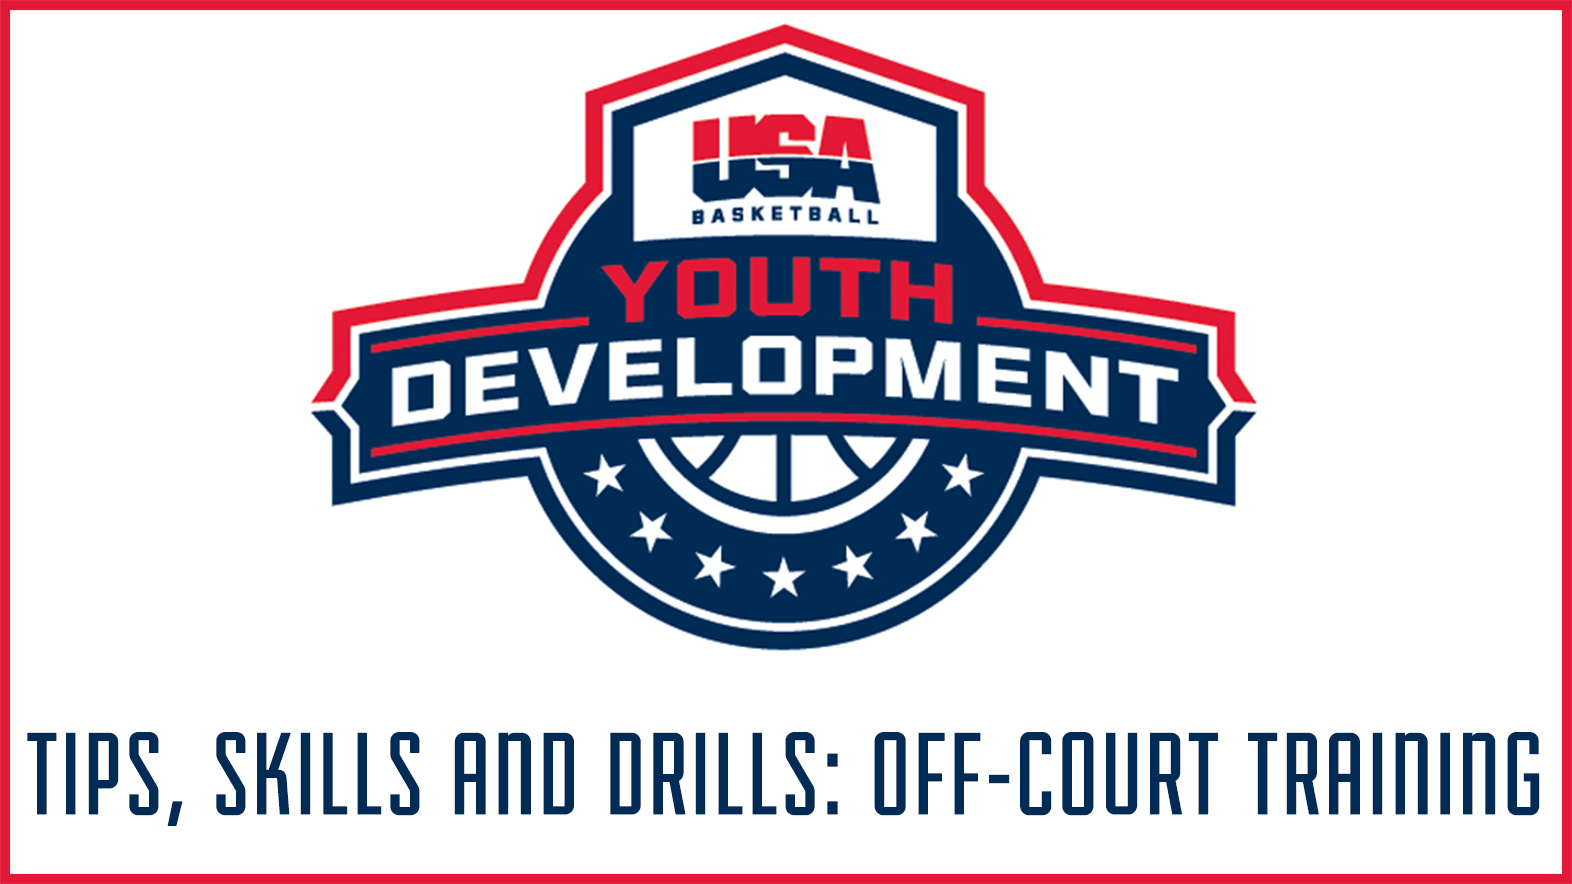 08649b1c54ff4ec1b48ce39b12e8bf0d.ashx?h=884&la=en&w=1572 usa basketball foundational off court training improve mind and